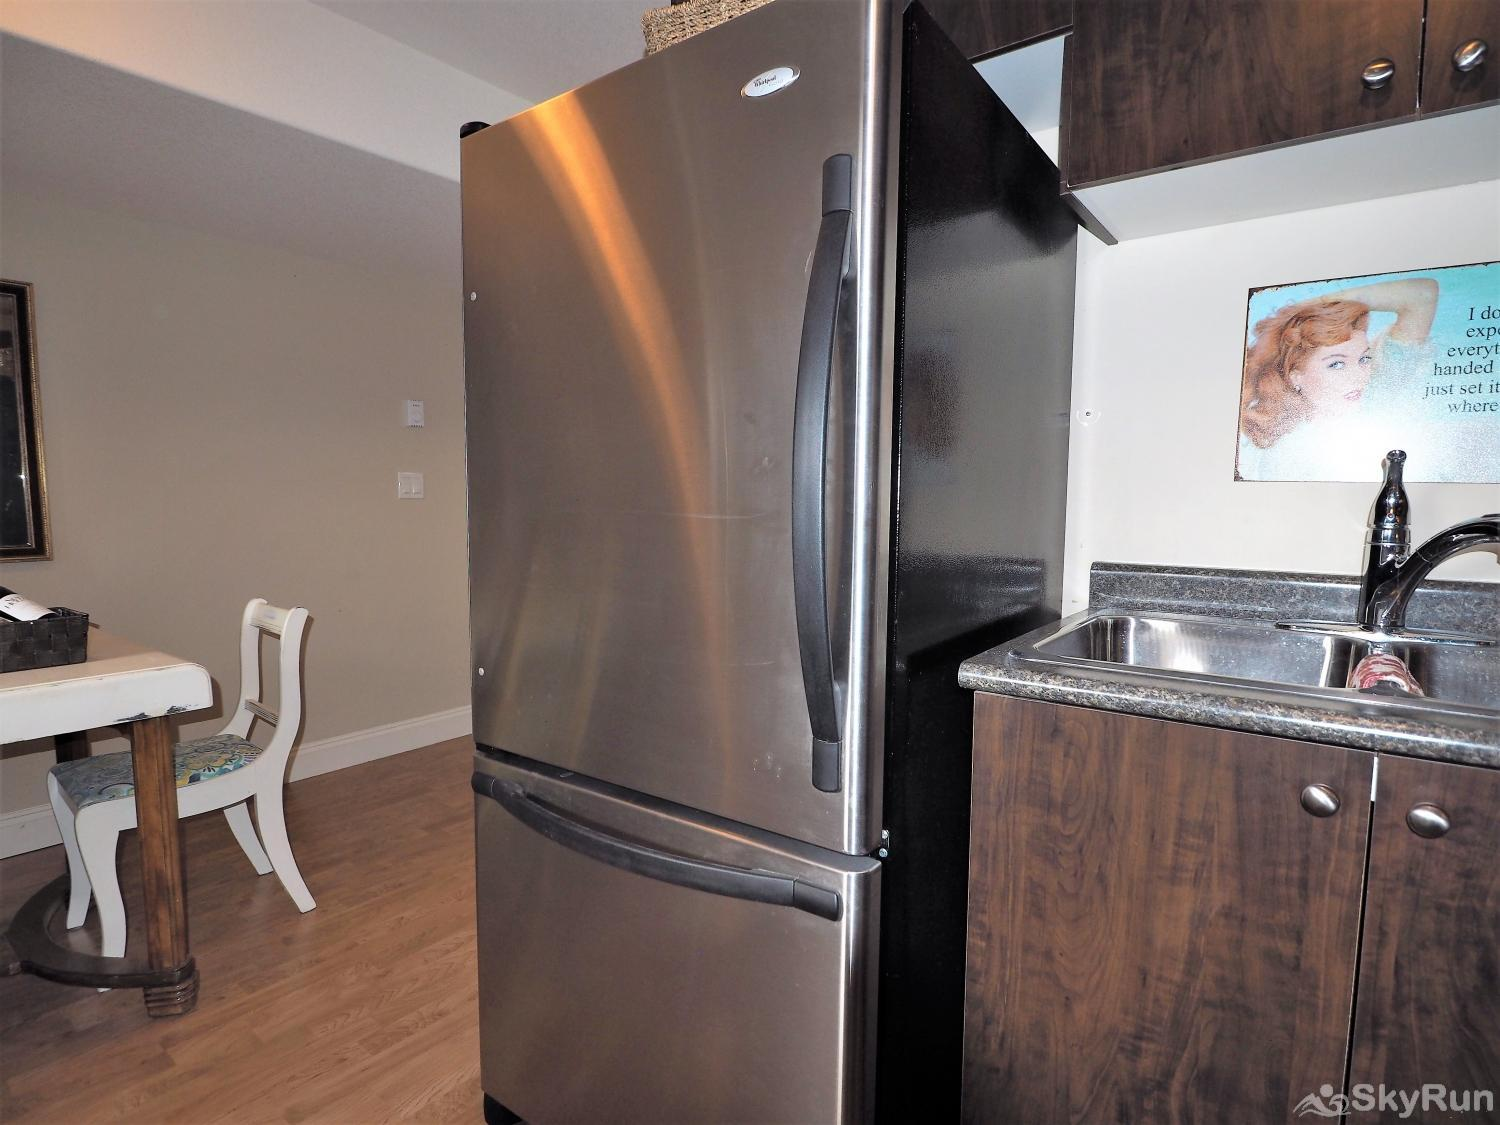 Old Summerland 1 bedroom suite Large fridge with bottom drawer freezer will hold all your goodies